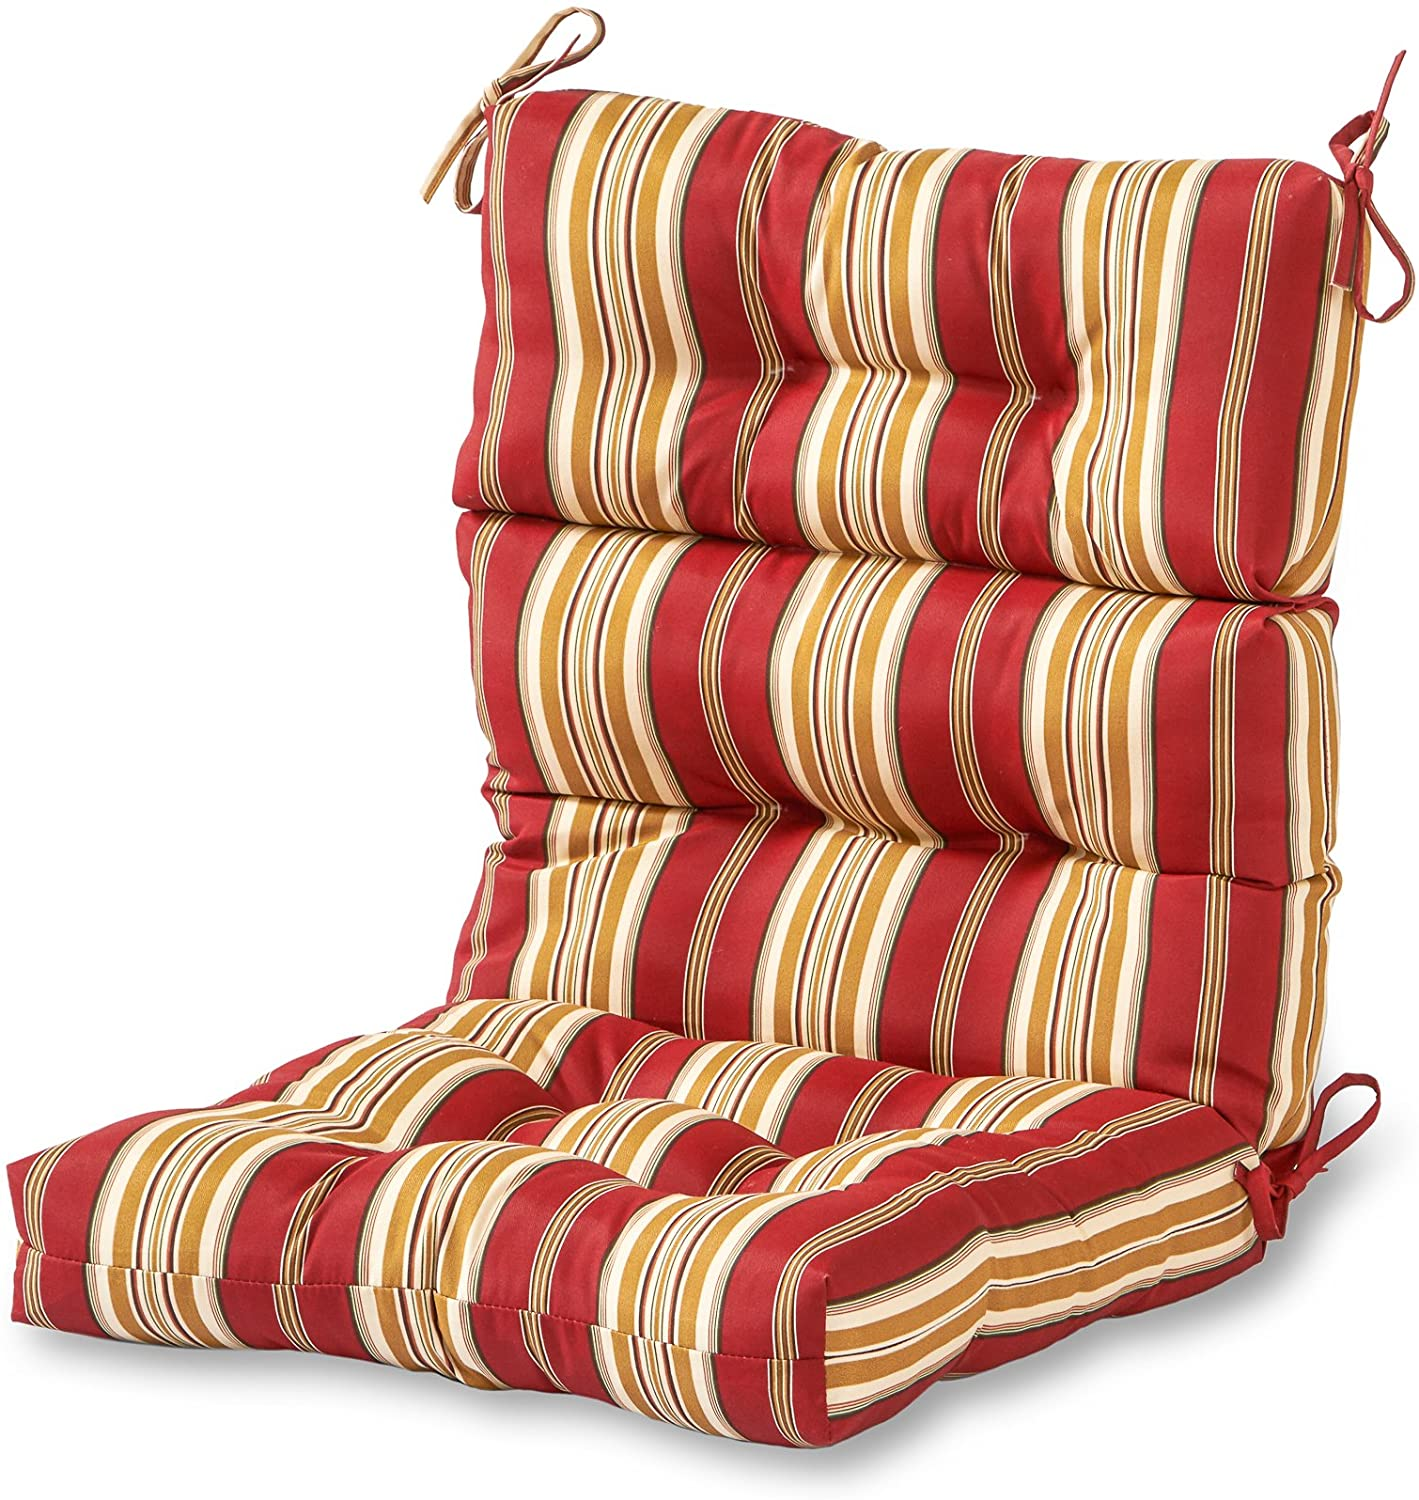 Greendale Home Fashions AZ4809-ROMASTRIPE Tuscan Stripe 44'' x 22'' Outdoor Seat/Back Chair Cushion